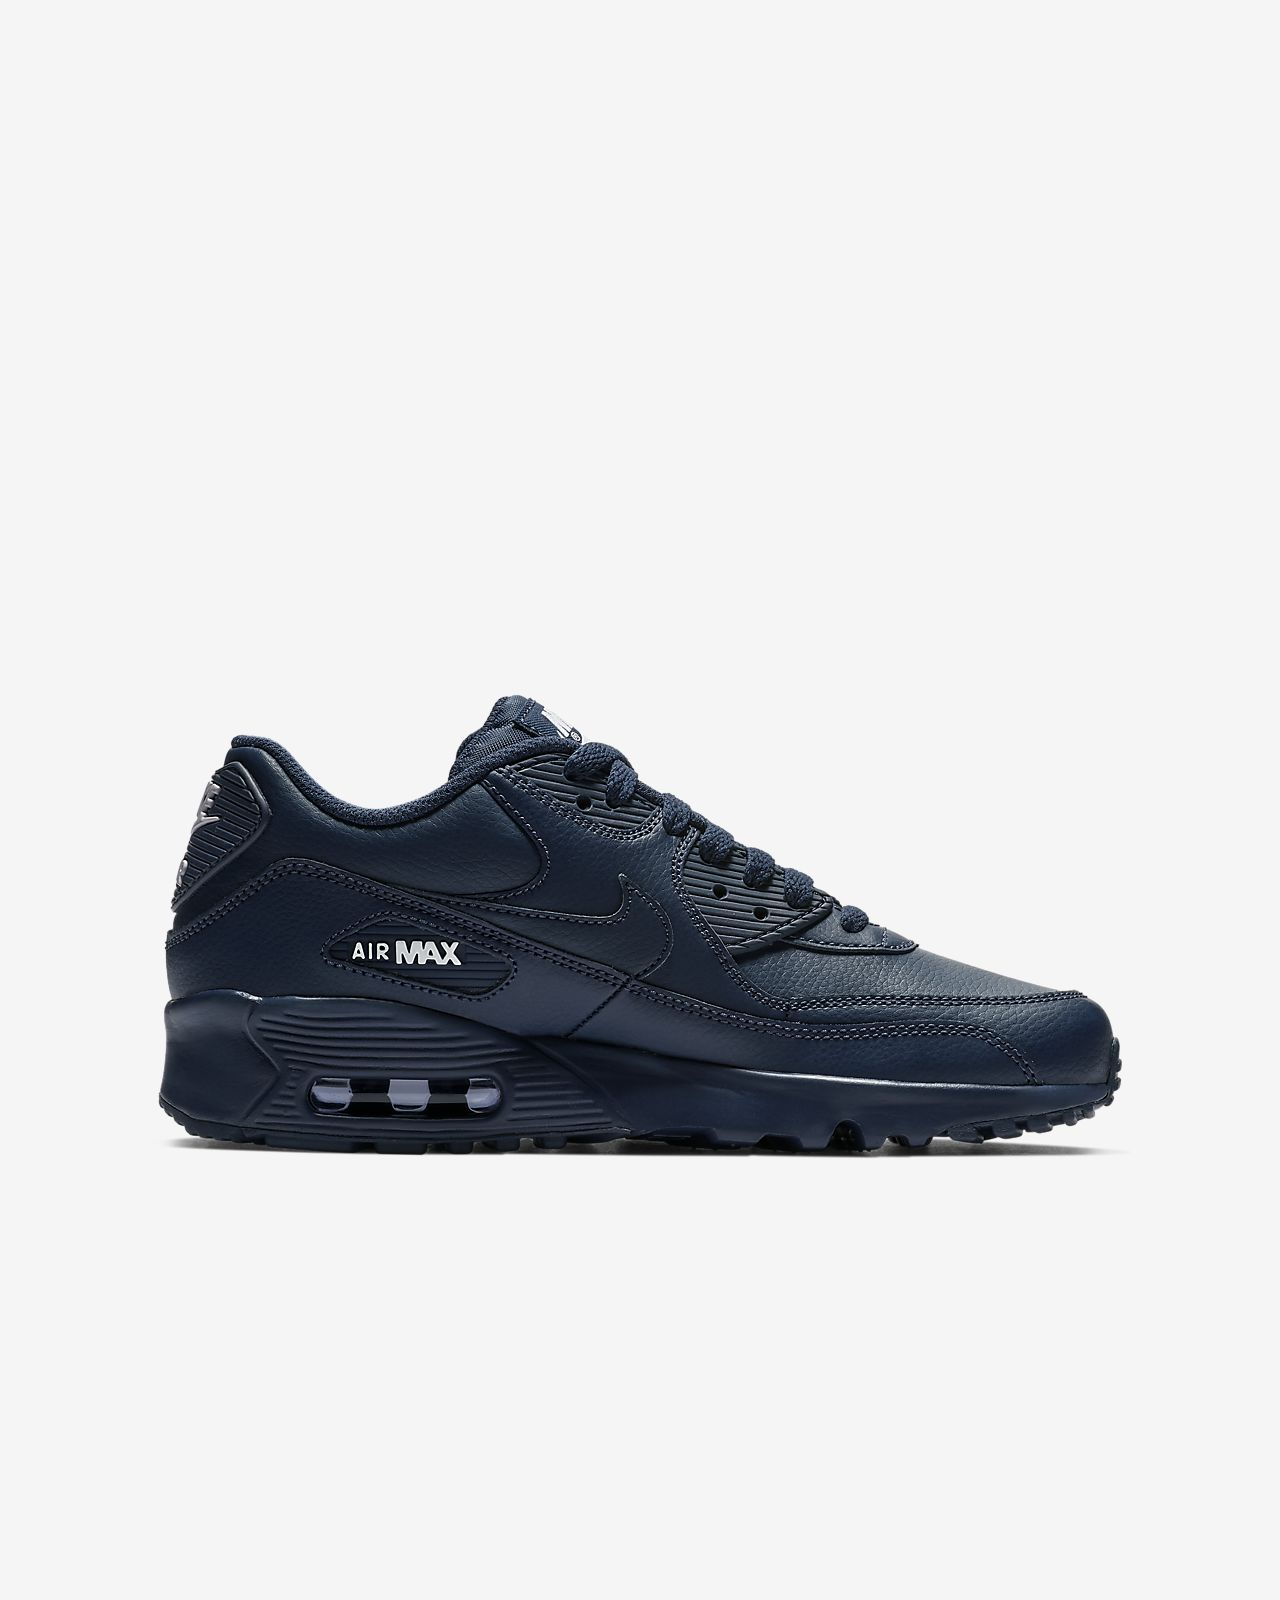 506d2bebb6 Nike Air Max 90 Leather Big Kids' Shoe. Nike.com